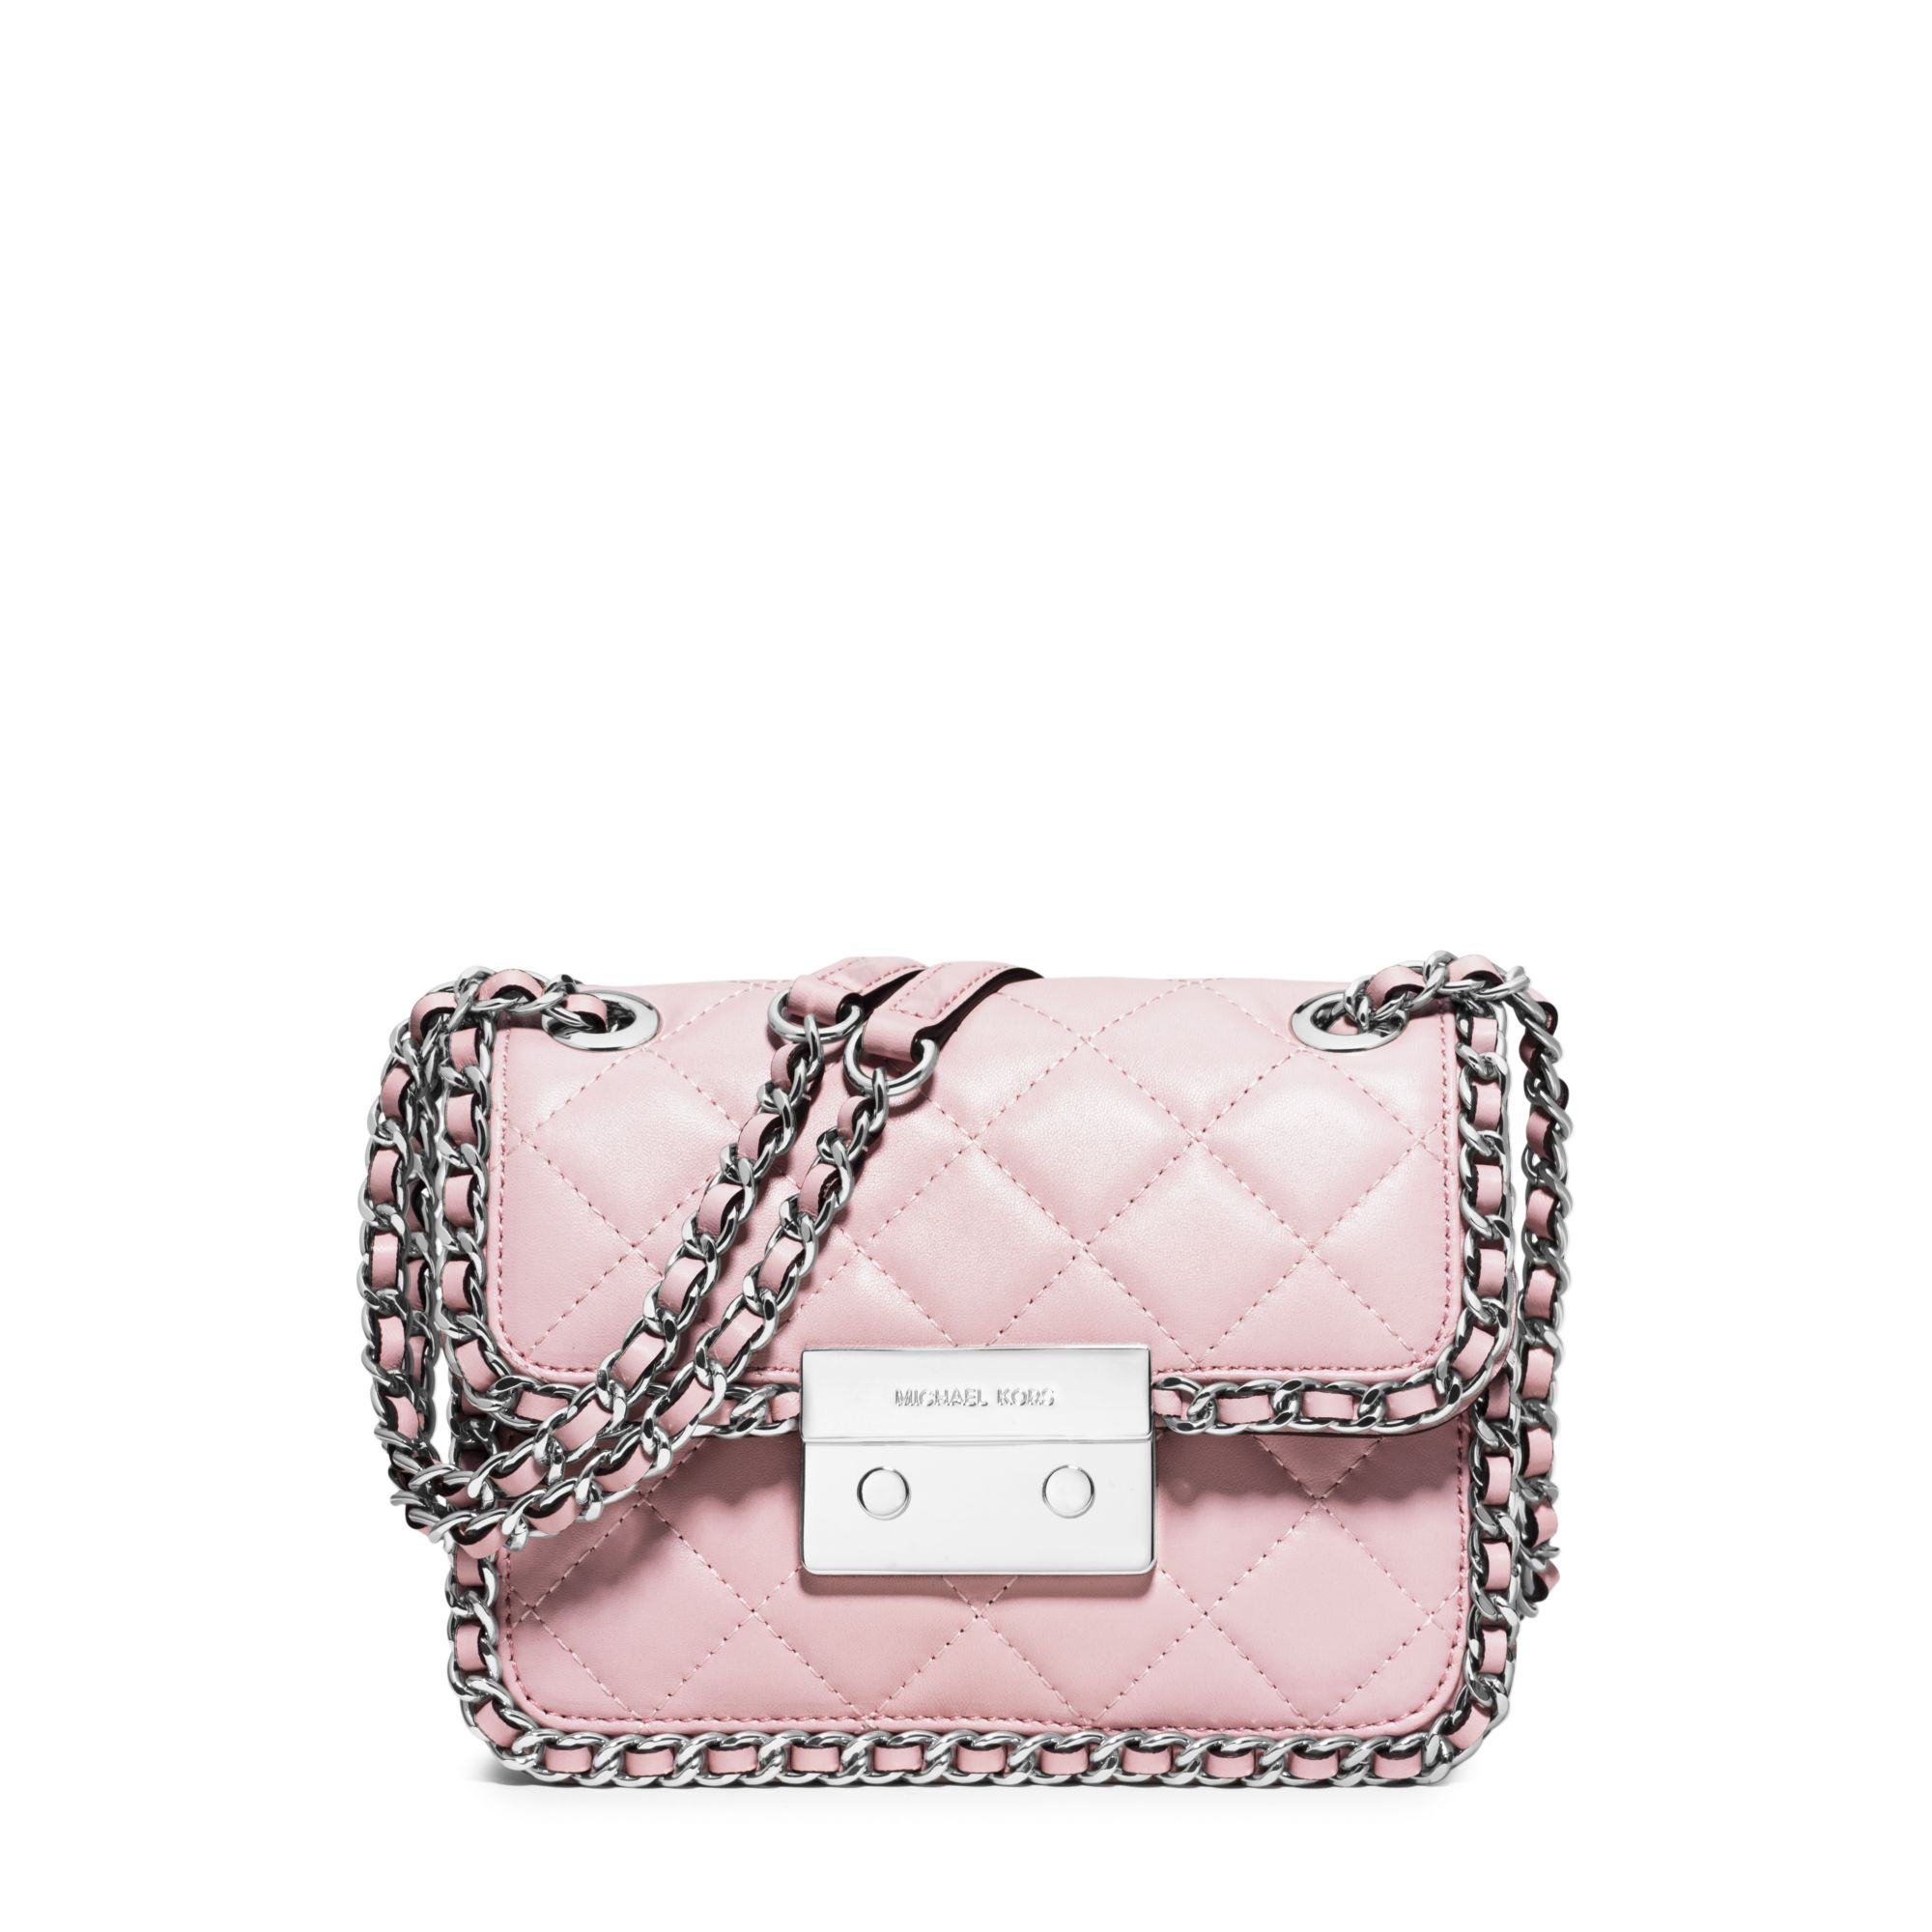 michael kors carine medium quilted leather shoulder bag in pink lyst. Black Bedroom Furniture Sets. Home Design Ideas